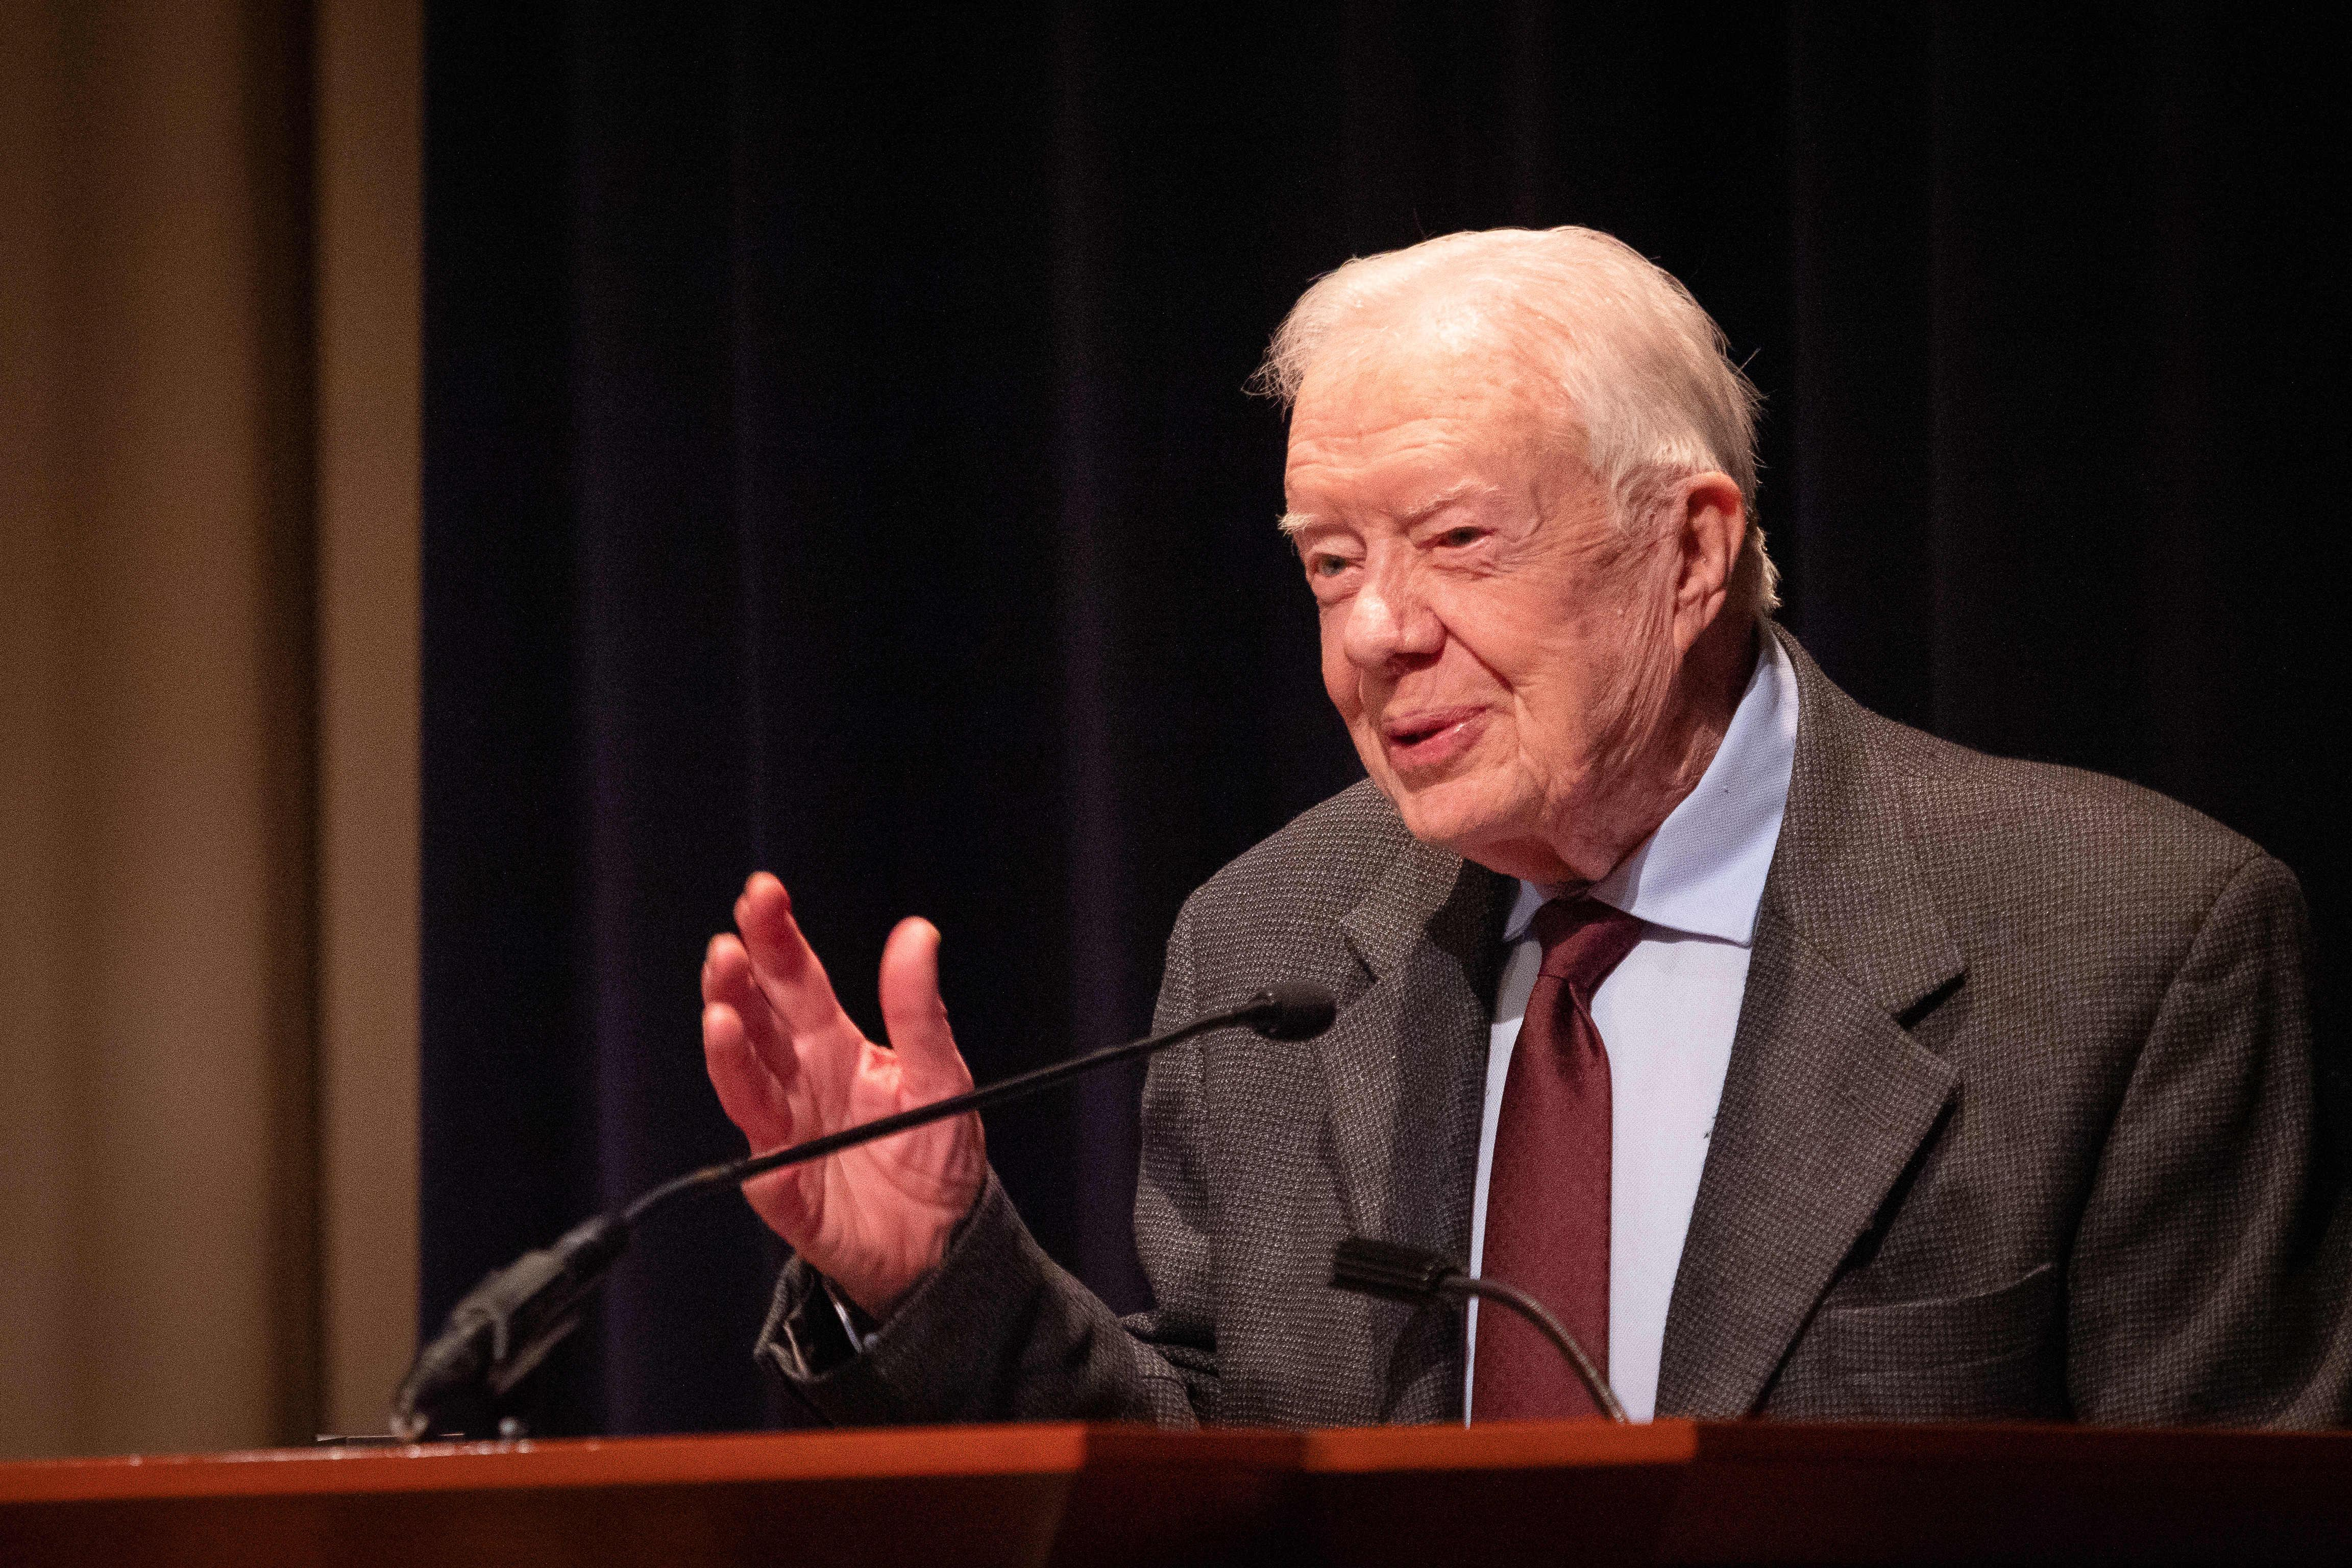 Former U.S. President Jimmy Carter speaks during the symposium commemorating the 40th anniversary of the normalization of US-China relations at the Carter Center in Atlanta on Jan. 18, 2019.